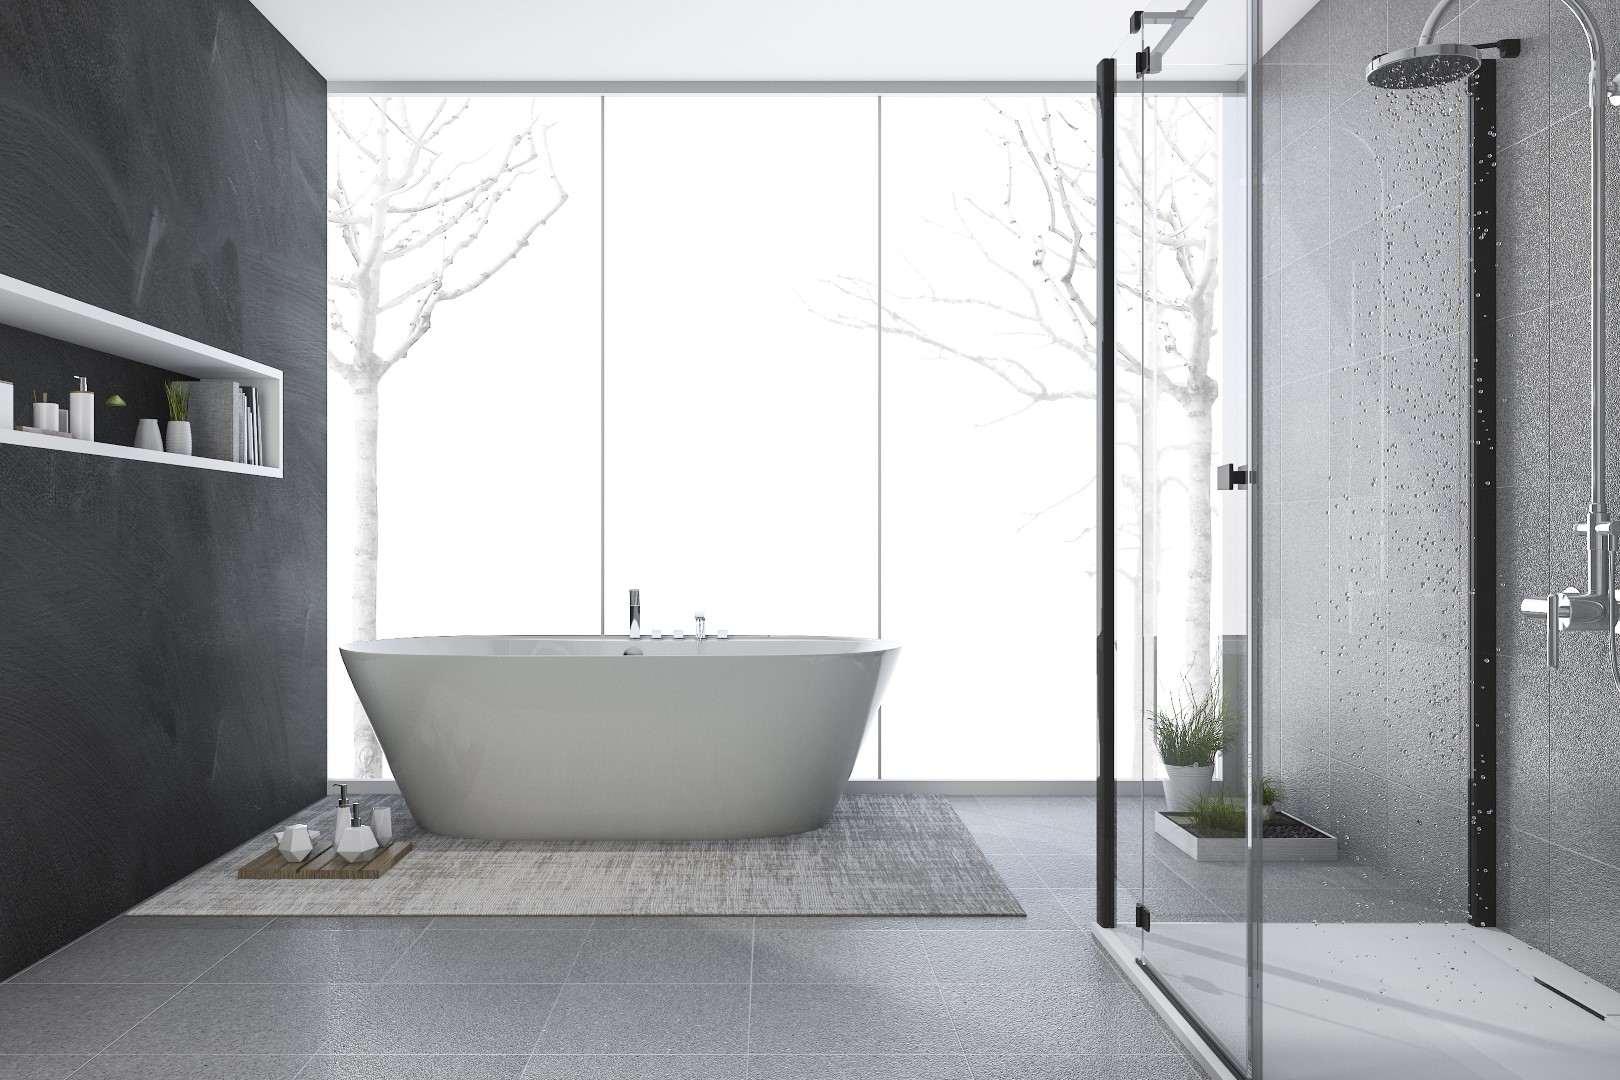 Marmox multiboard, Marmox shower base in the bathroom | Marmox NZ